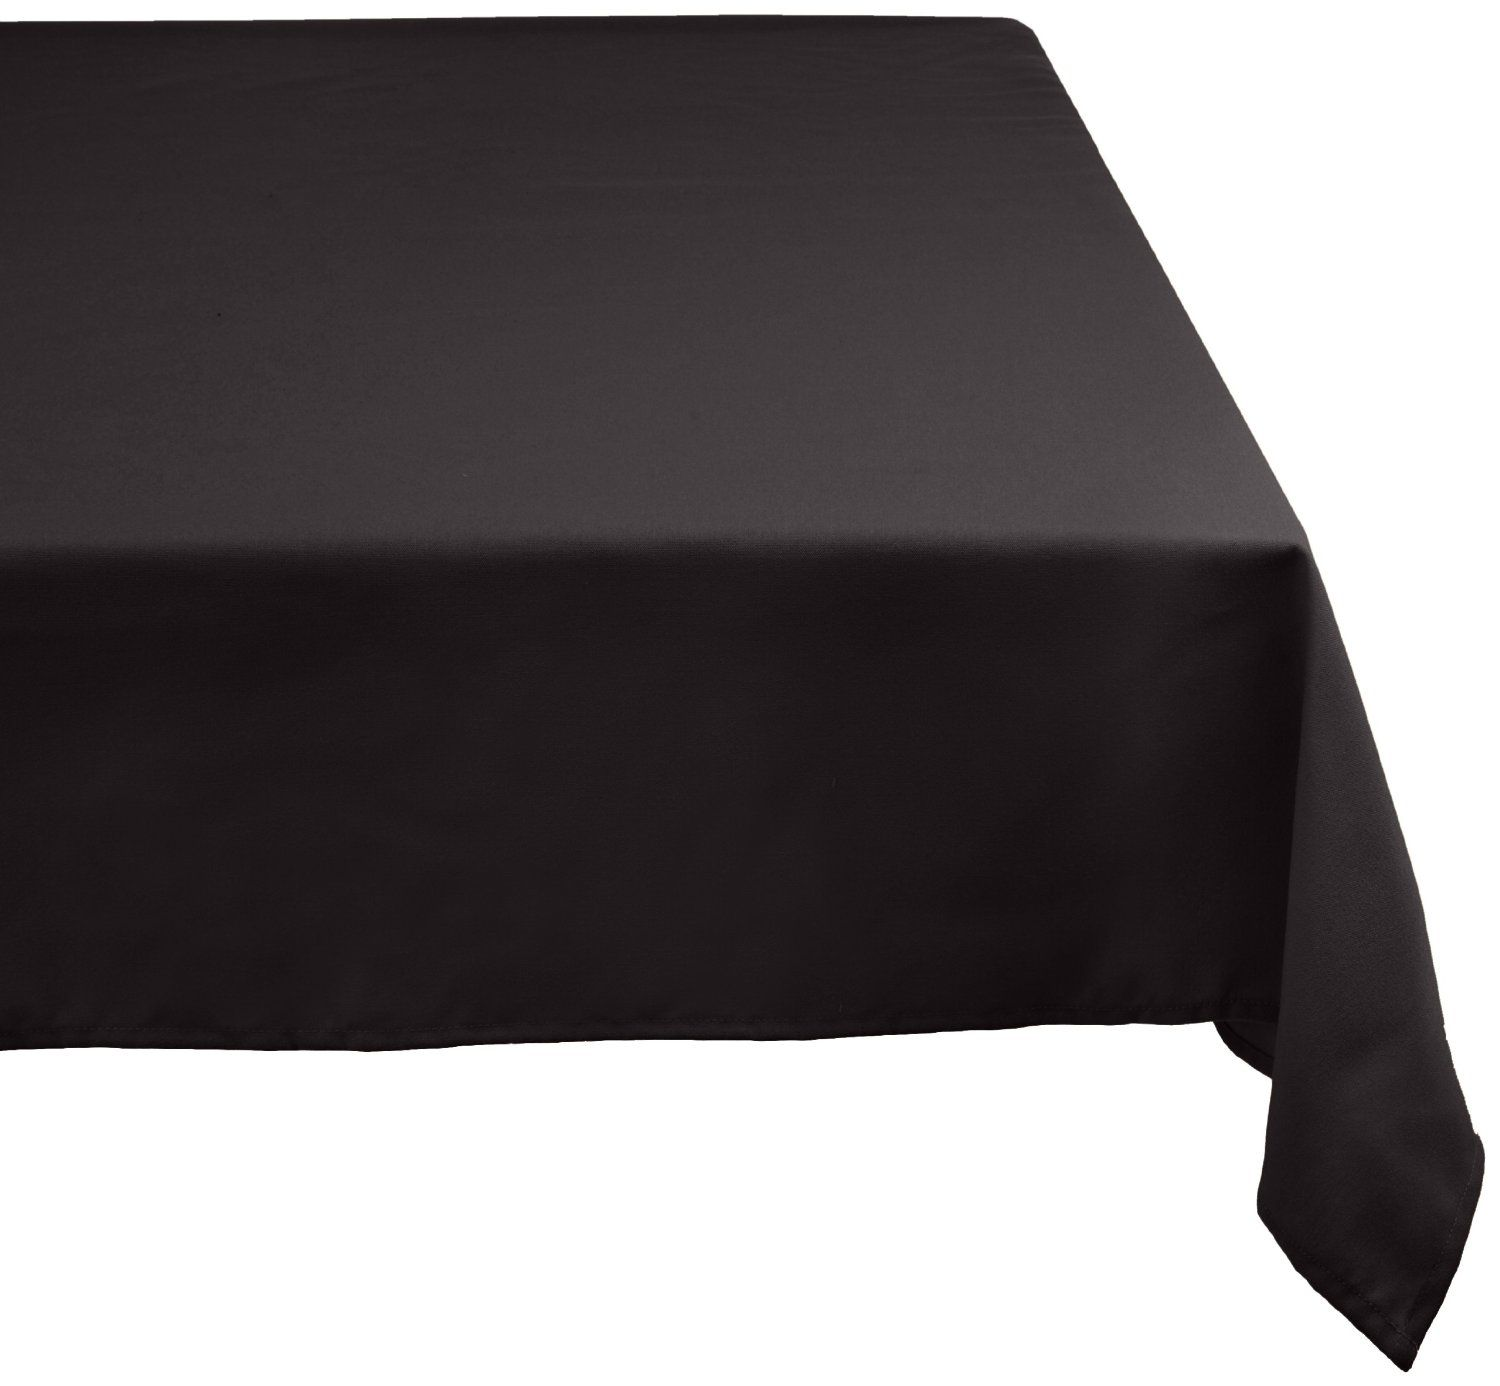 Amazon.com   DII 100% Polyester, Machine Washable Tablecloth Black 52x70,  60x104